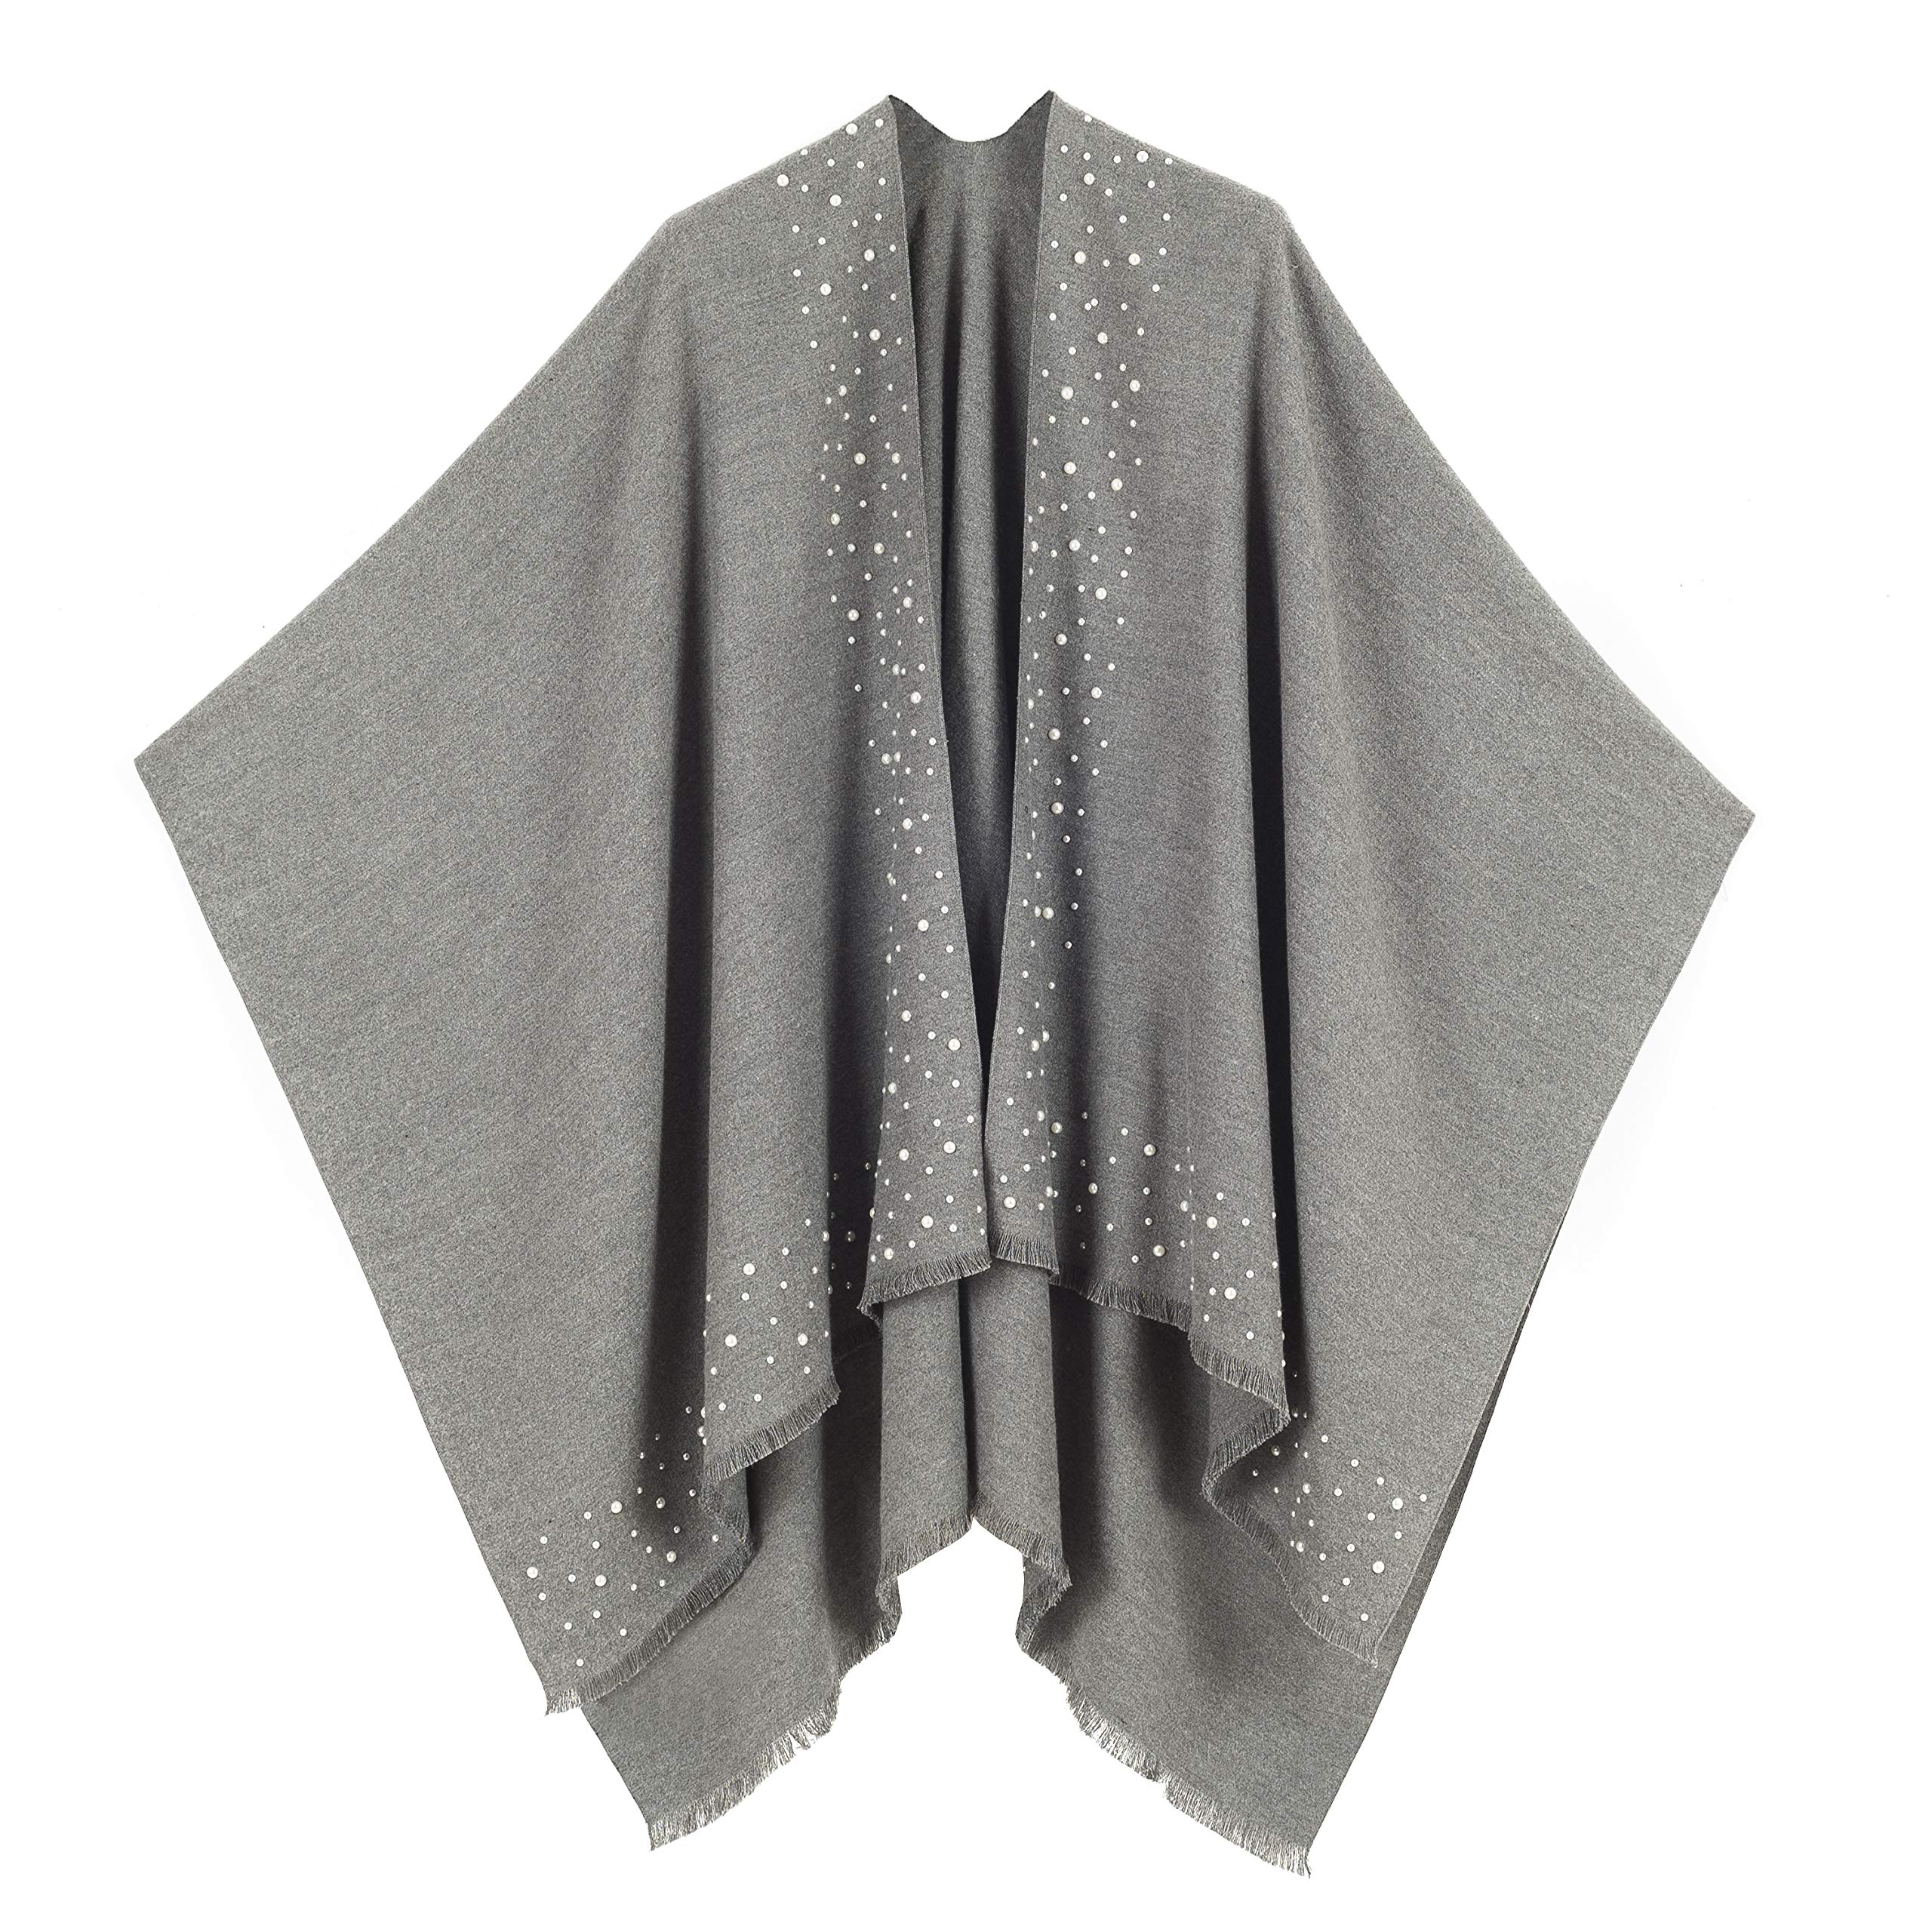 Cardigan Poncho Cape: Women Elegant Gray Grey with Pearl Cardigan Shawl Wrap Sweater Coat for Winter (Gray with Pearl)